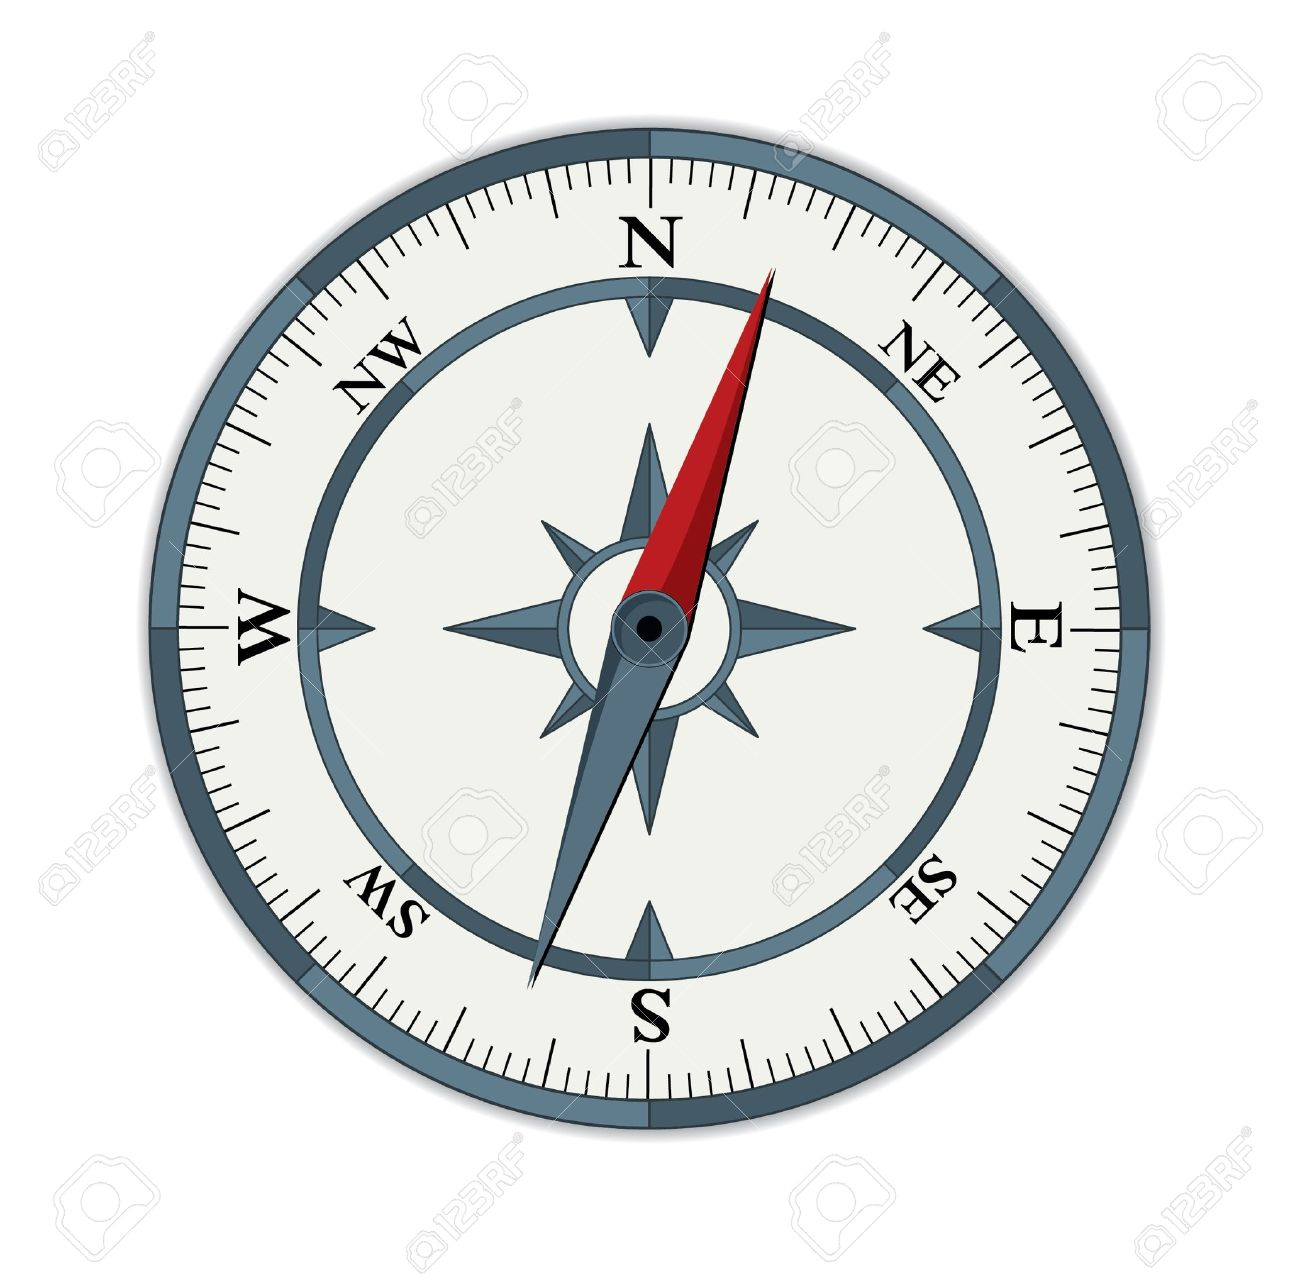 vector compass illustration Stock Vector - 11562830